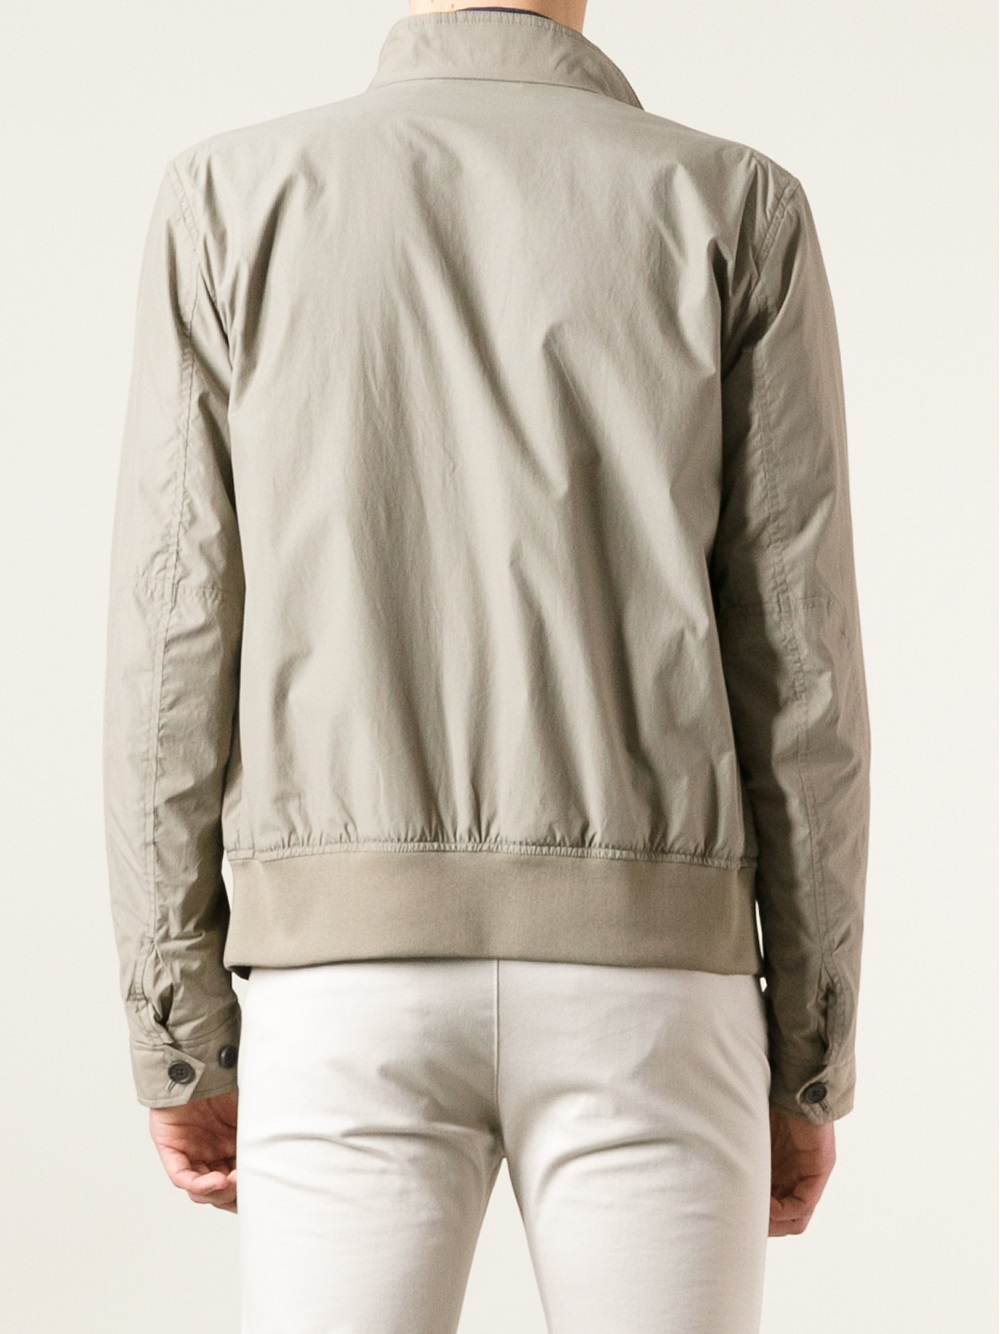 Z zegna Bomber Jacket in Natural for Men | Lyst